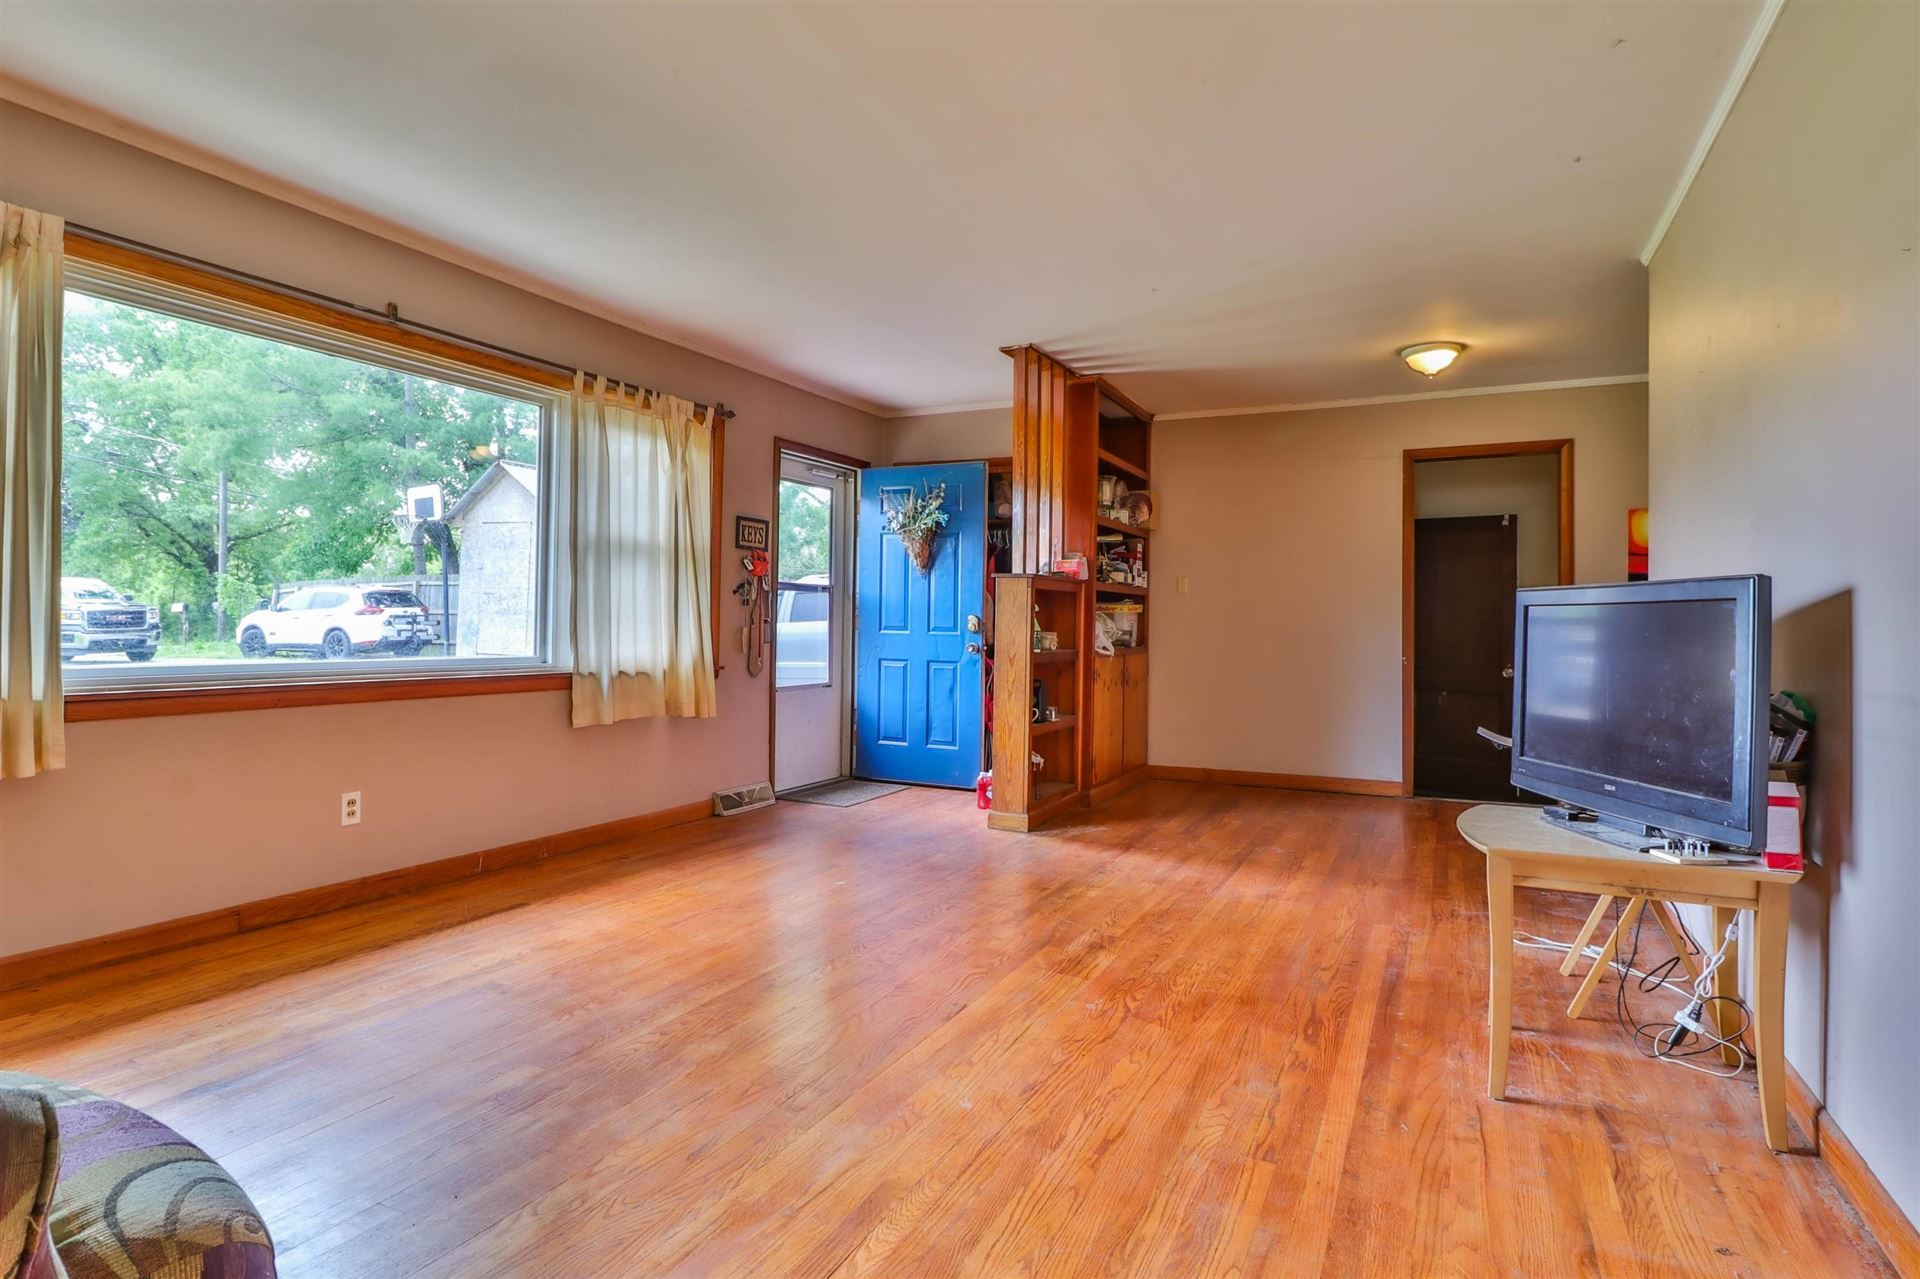 Photo of 4901 Prospect Rd, Knoxville, TN 37920 (MLS # 1153344)